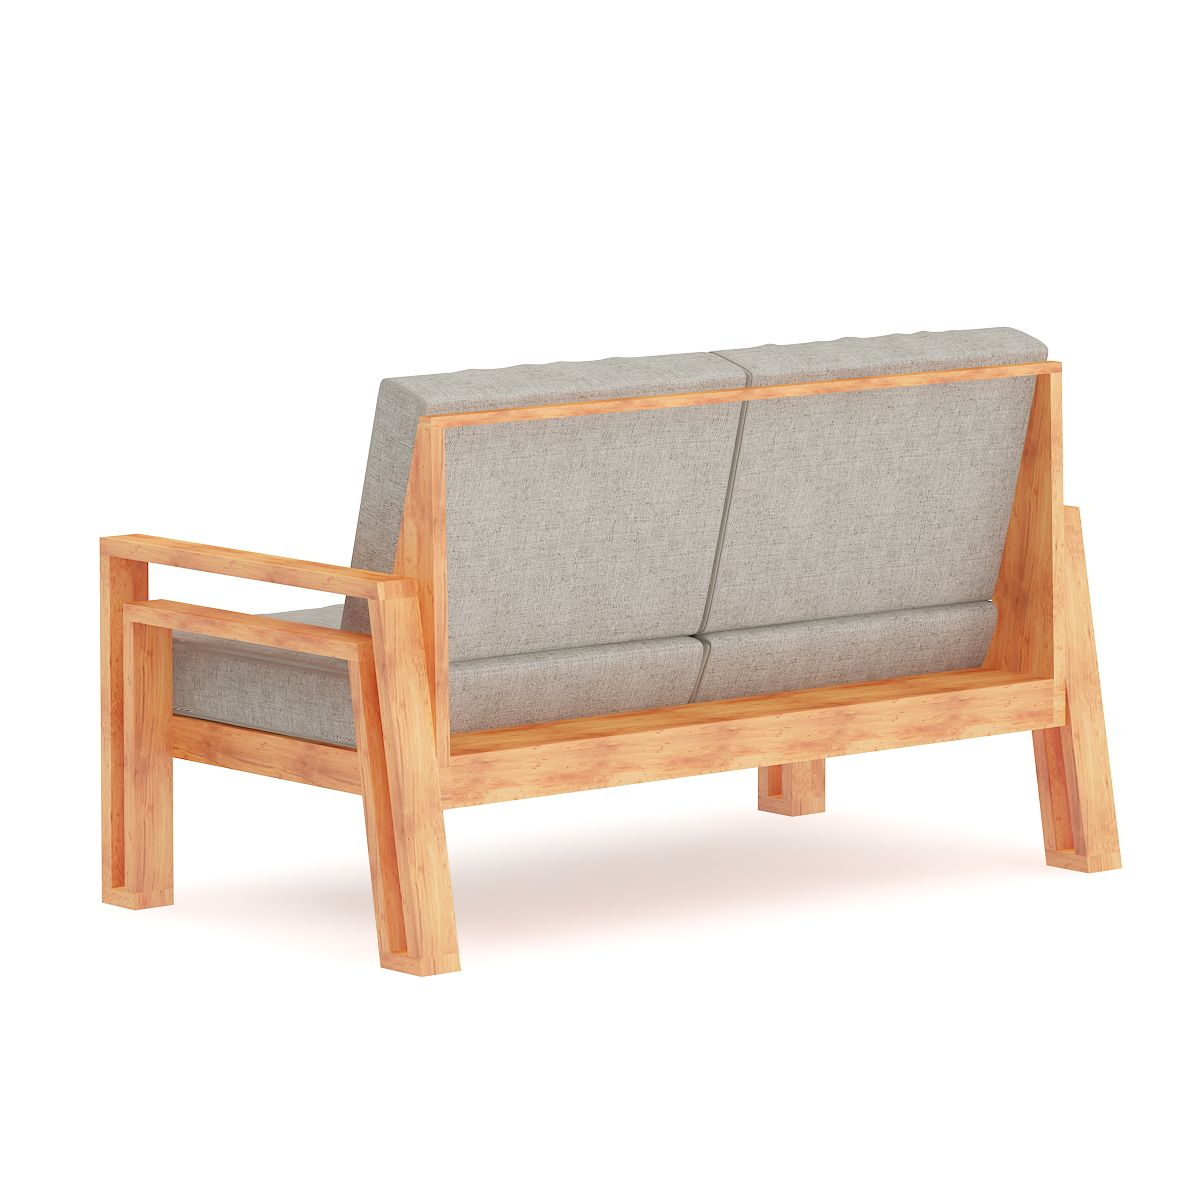 Grey Sofa With Wooden Arms Sofa Grey Arms Wooden